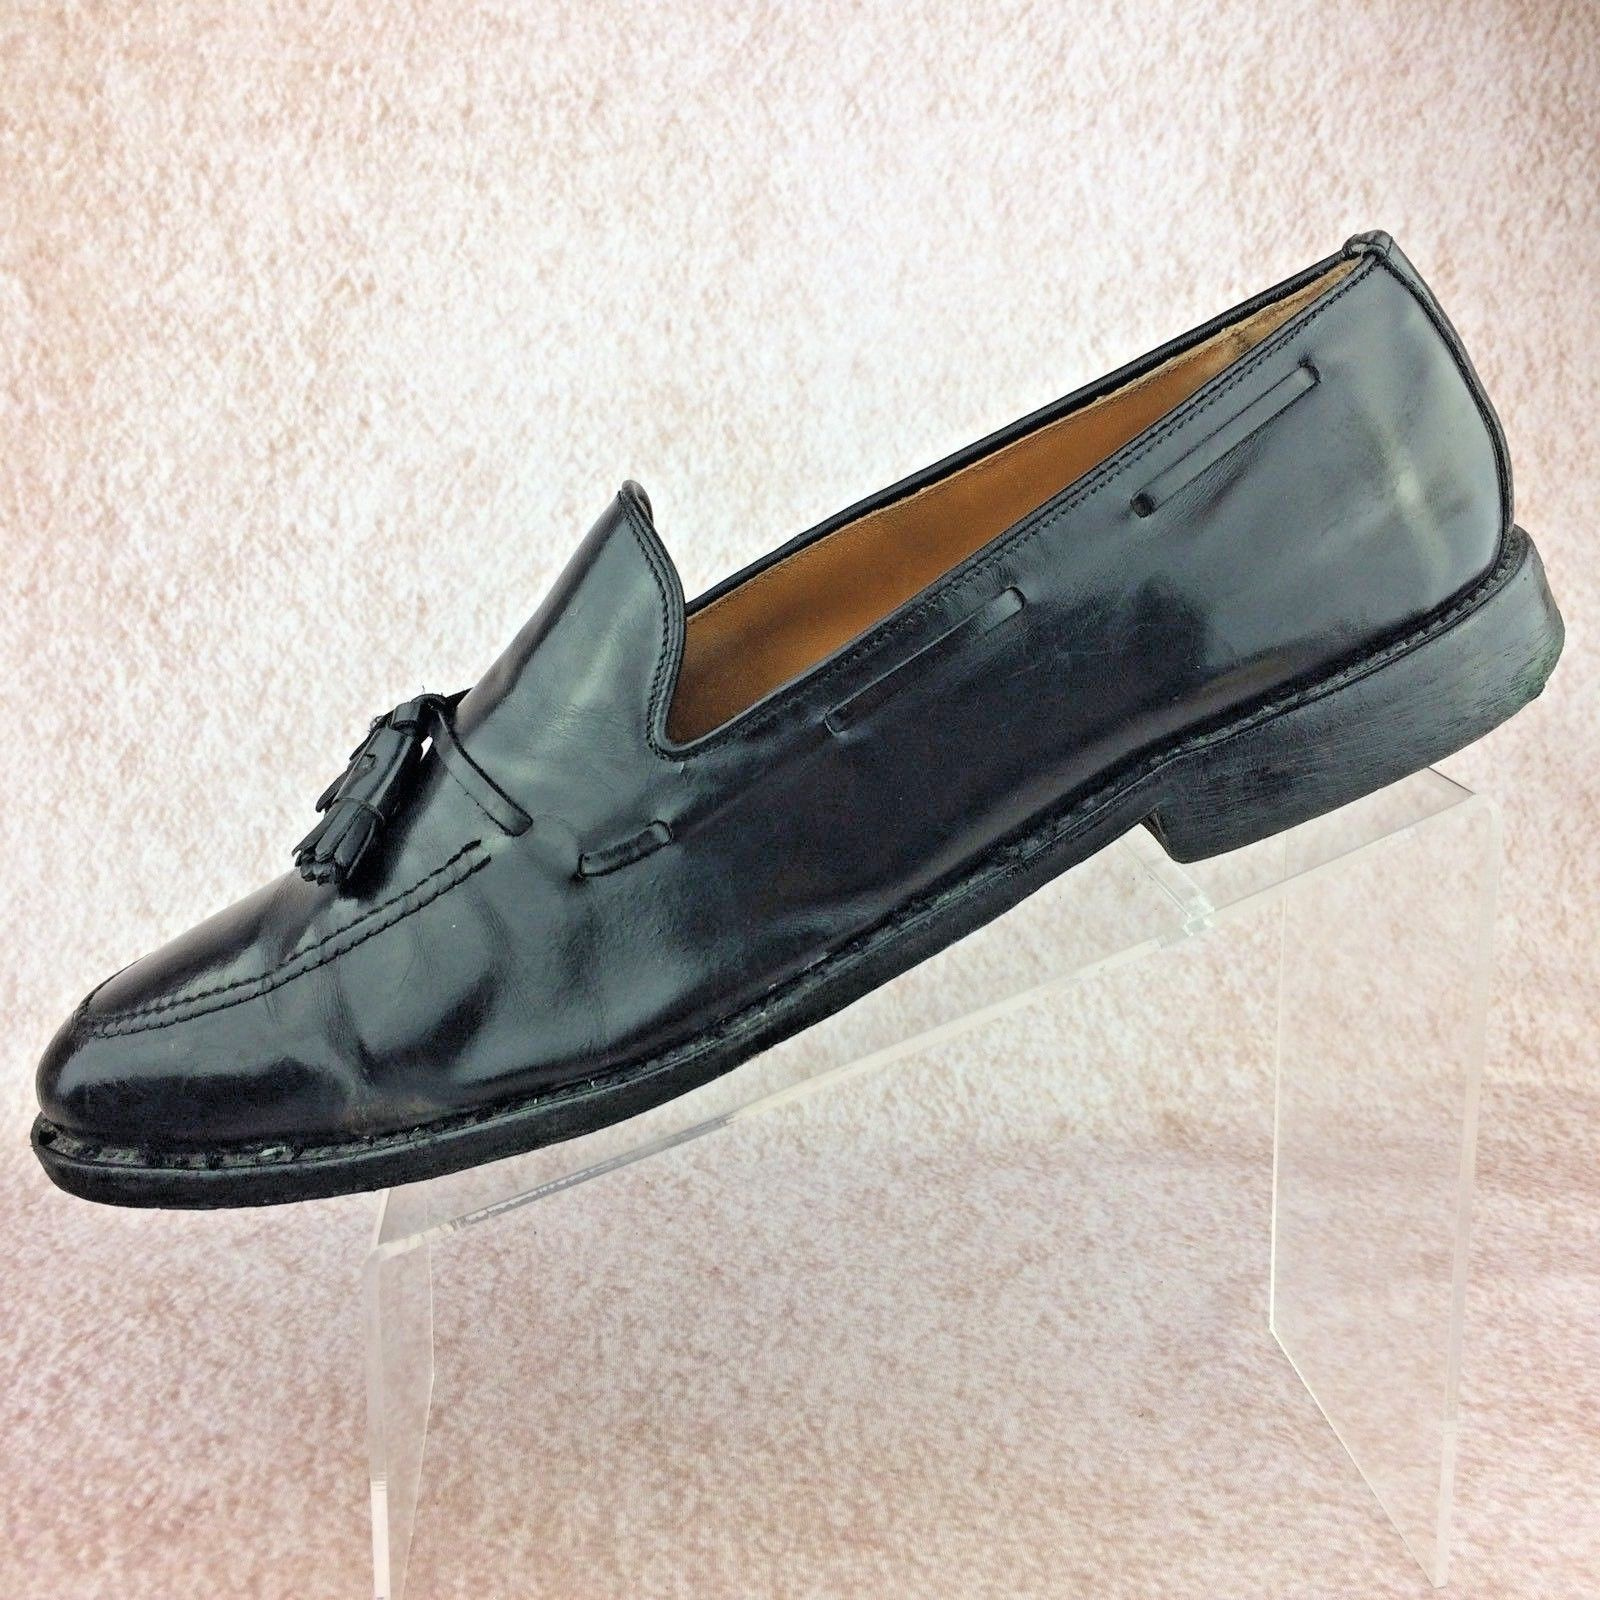 fdd1dc65dae TO BOOT NEW YORK MEN S CAP TOE OXFORD SHOES MEDALLION SIZE 10 M PREOWNED  CLEAN!